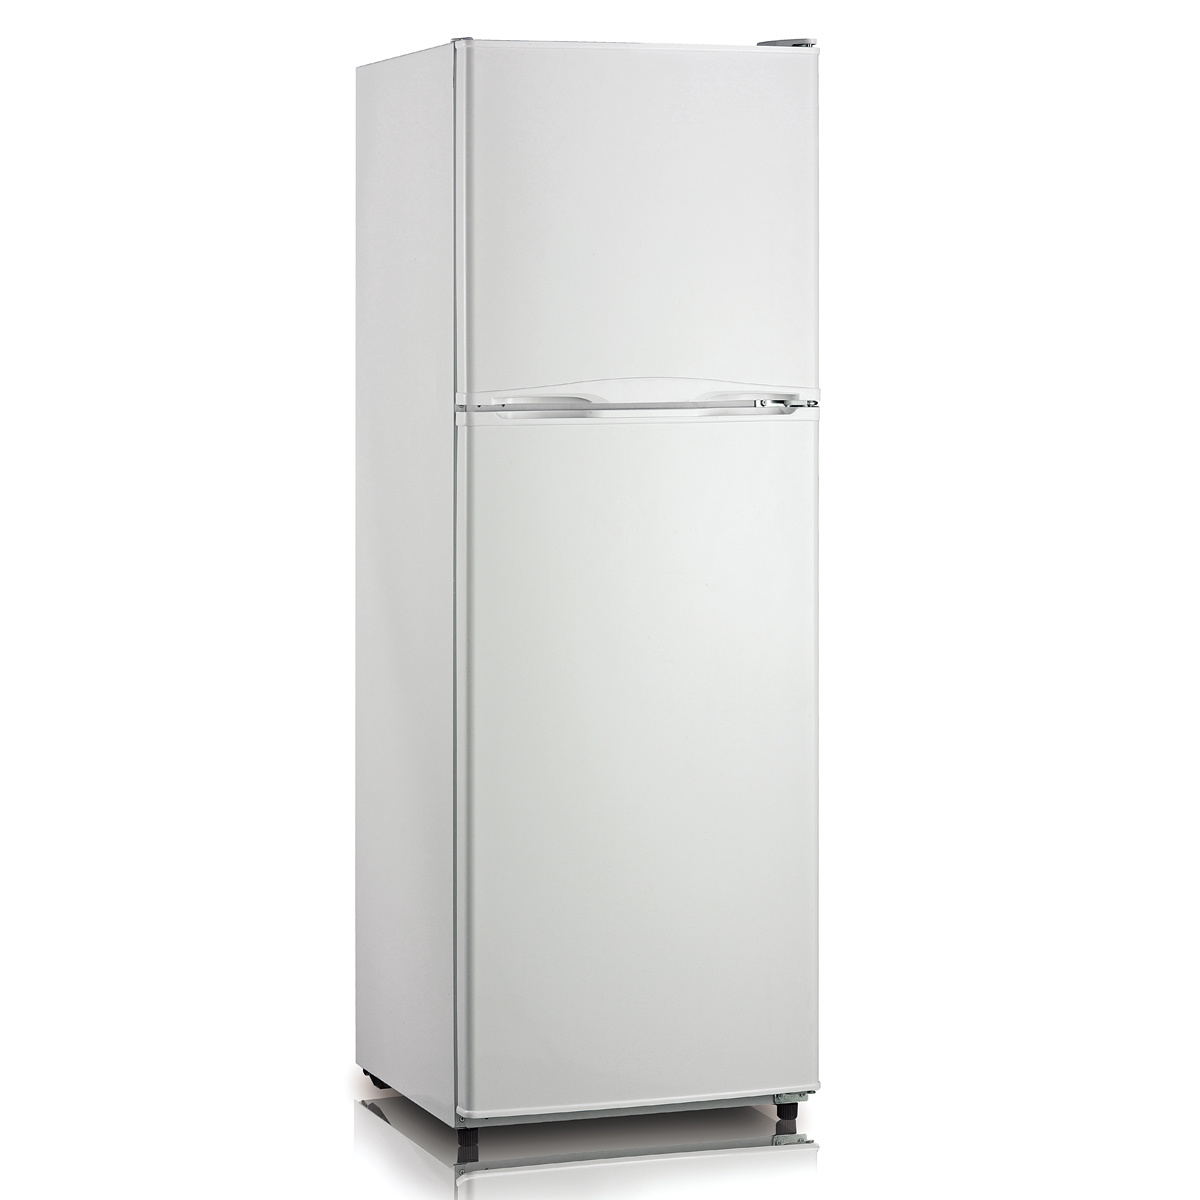 Most Reliable Refrigerator >> China 326l Domestic Refrigerator Most Reliable Hotel Fridge